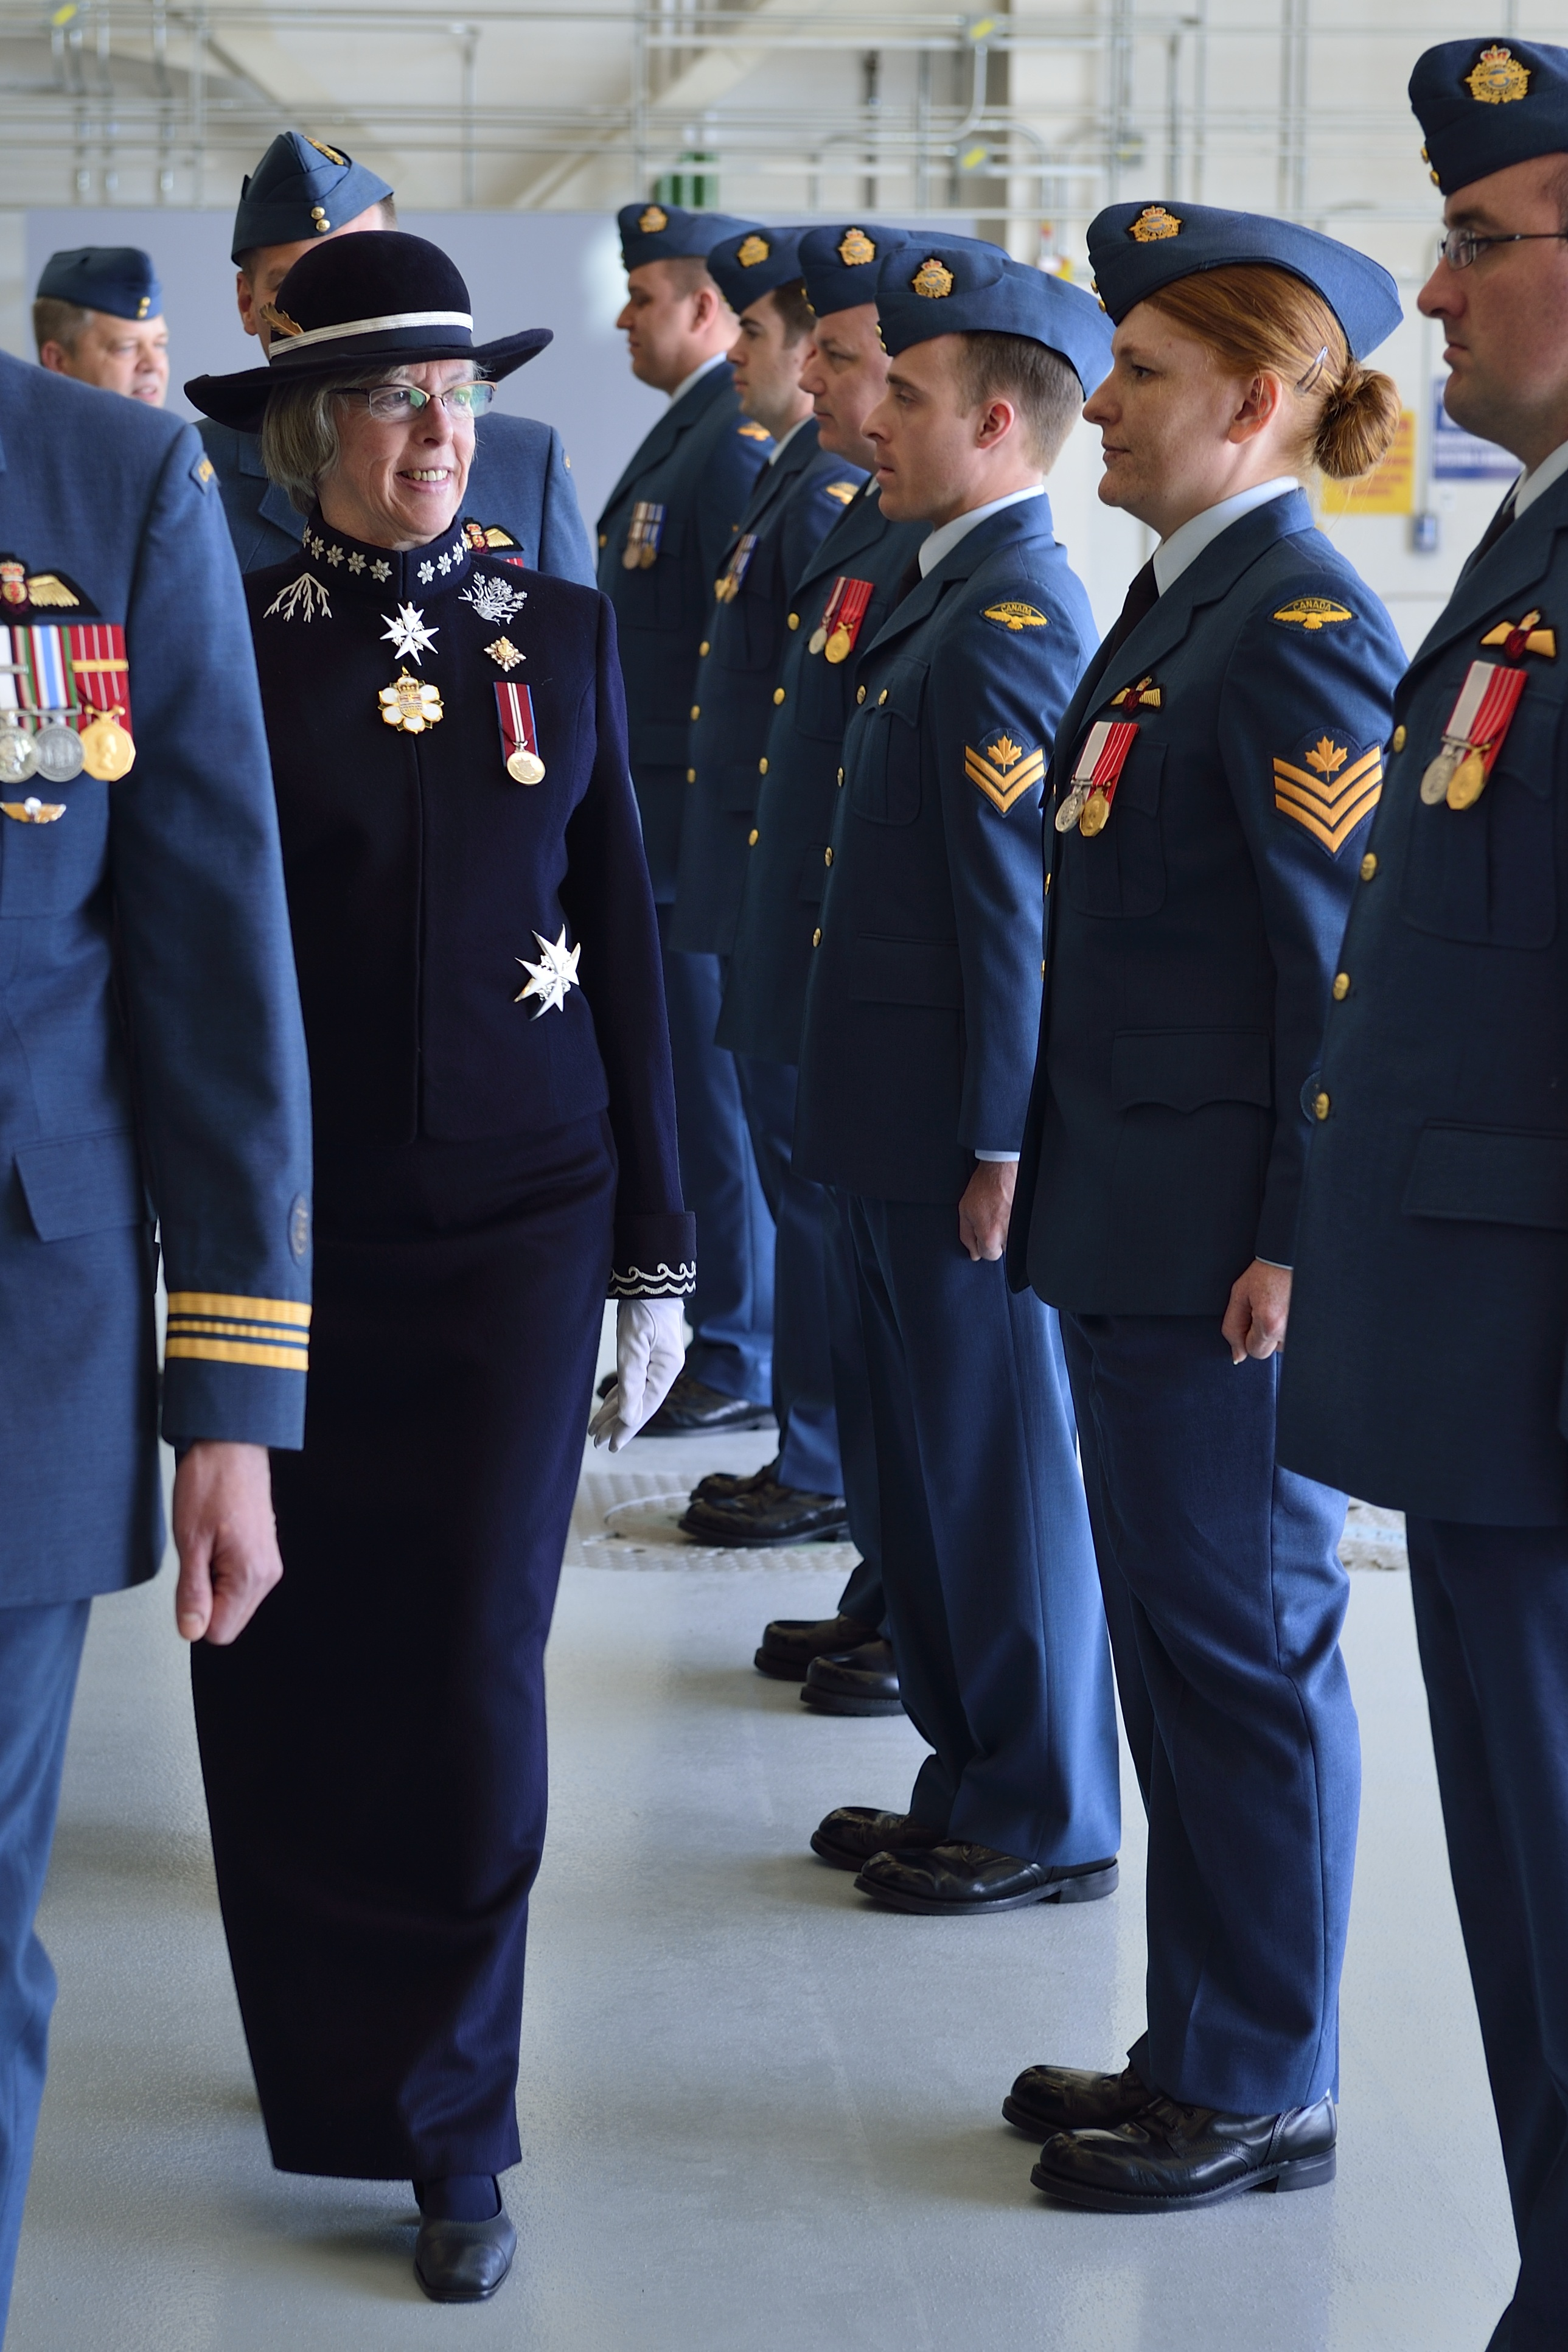 The Honourable Judith Guichon, Lieutenant Governor of British Columbia, inspects members of 443 Maritime Helicopter Squadron during a ceremony to mark the official opening and naming of the squadron's new hangar facility on April 9, 2015. The ceremony included a parade to celebrate the consecration of a new squadron Colour and the unveiling of the new hangar's name. PHOTO: Corporal Malcolm Byers